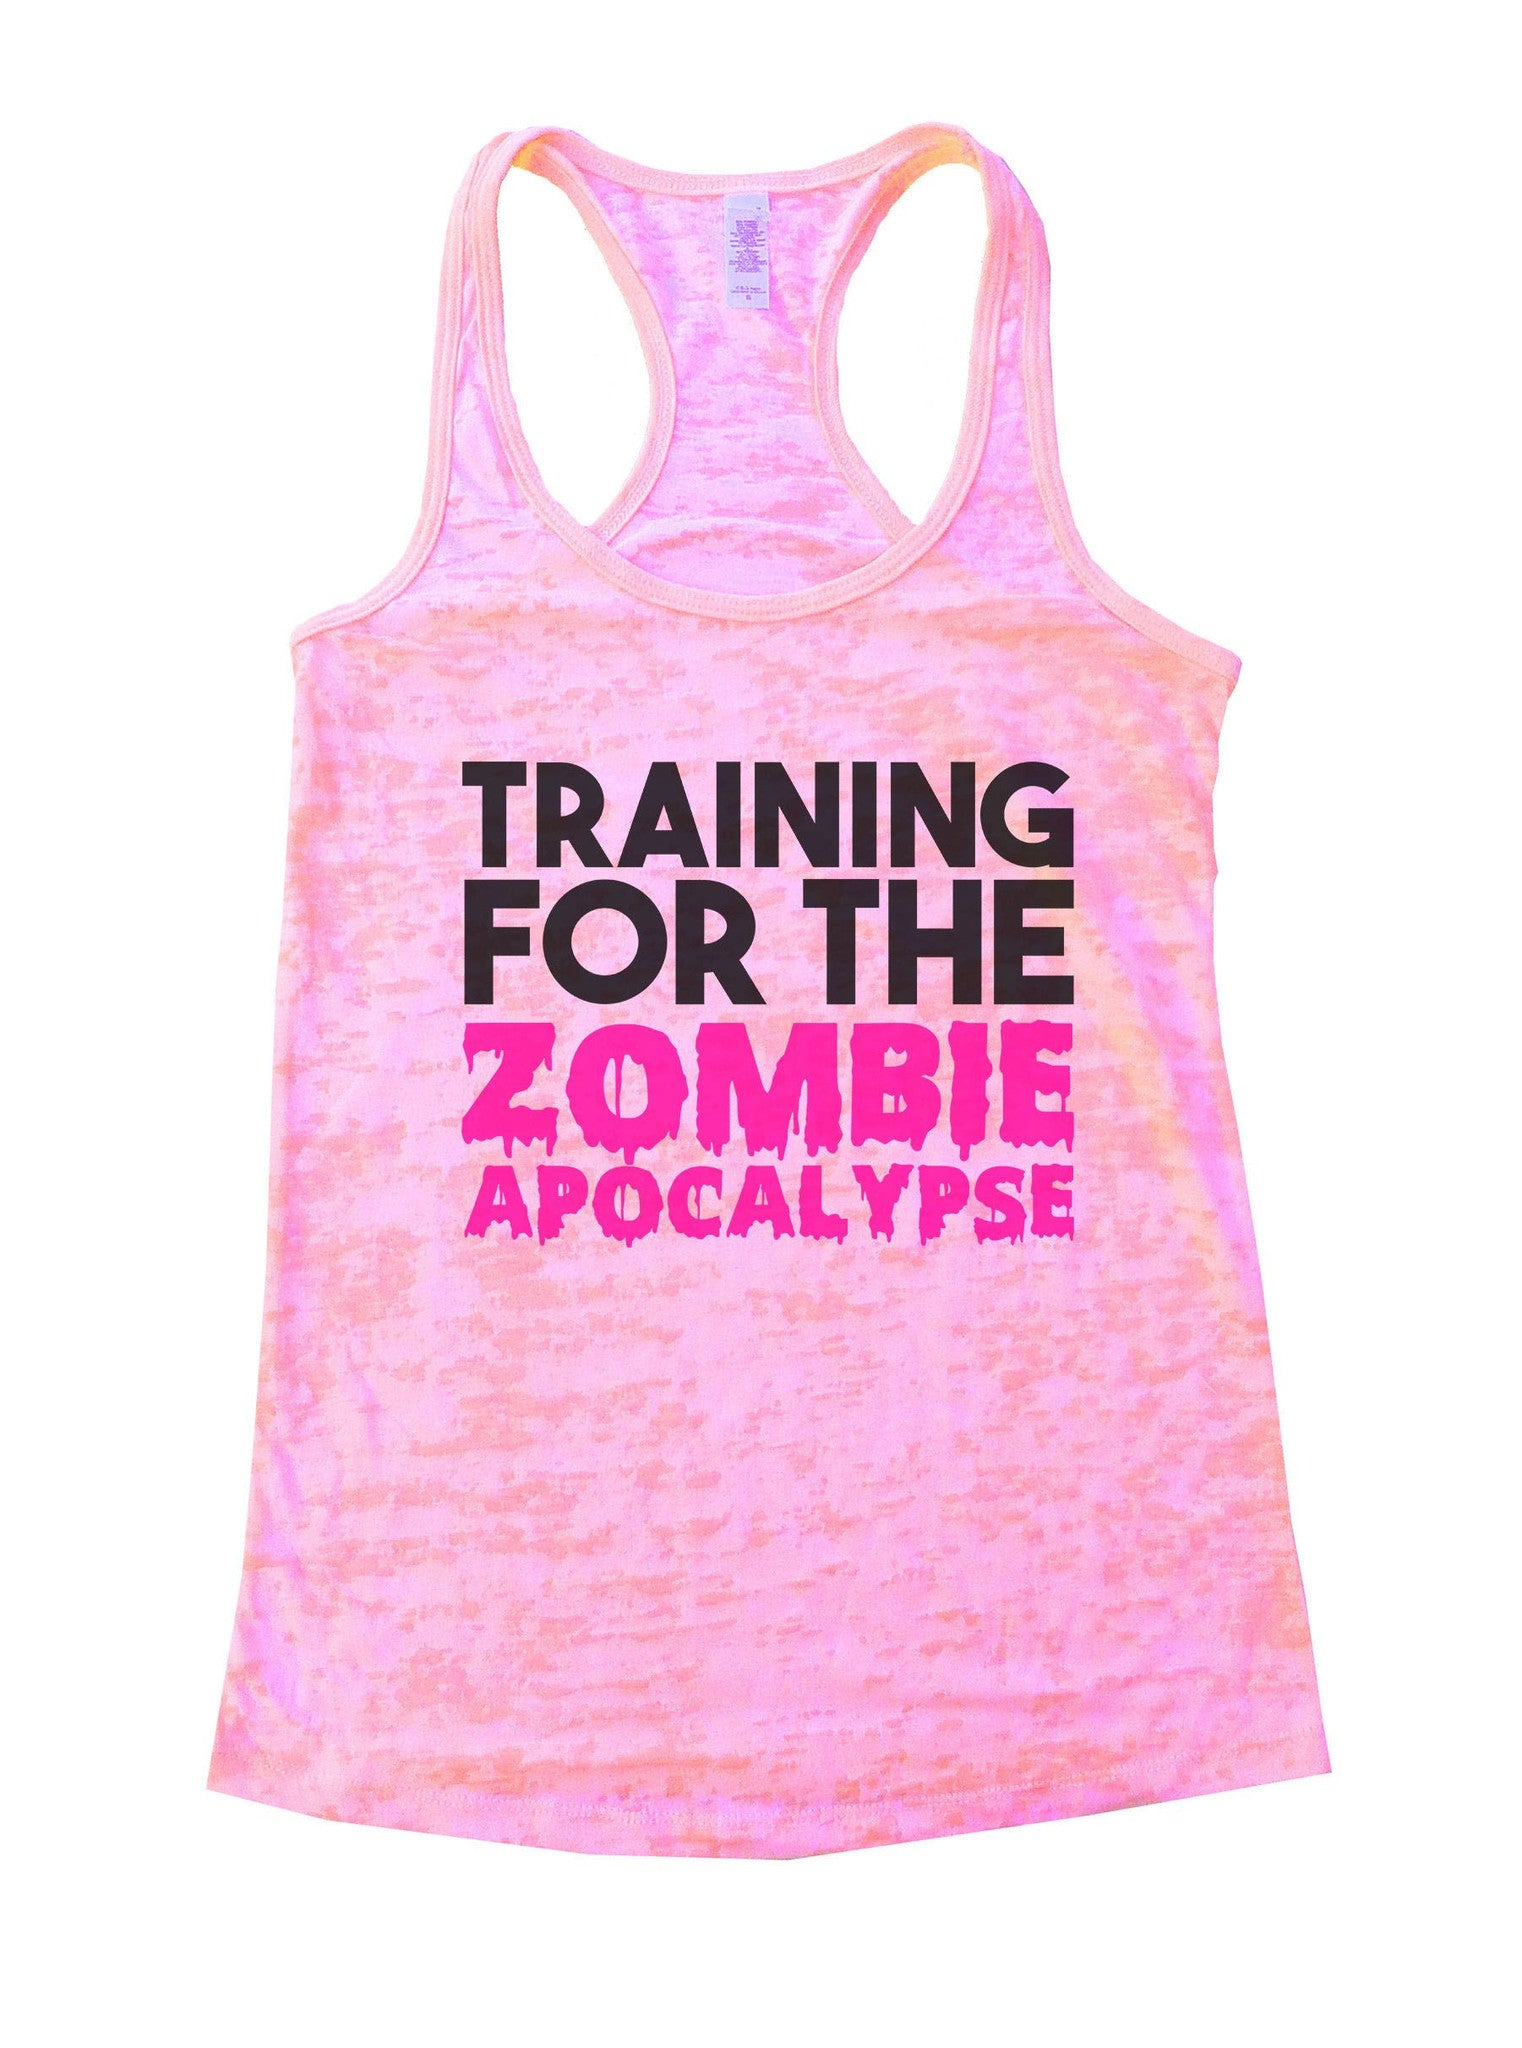 Training For The Zombie Apocalypse Burnout Tank Top By BurnoutTankTops.com - 873 - Funny Shirts Tank Tops Burnouts and Triblends  - 1